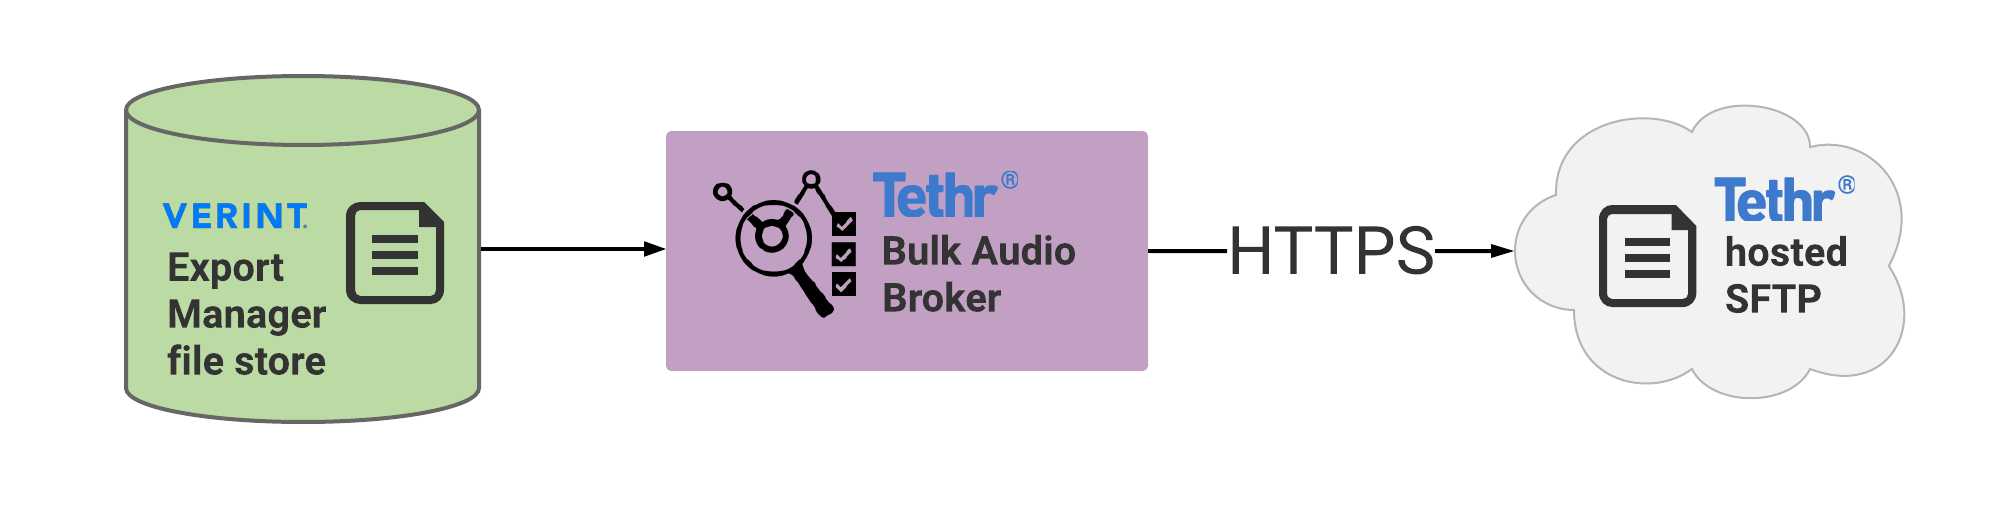 Verint_integration_with_Tethr-Configure_a_Tethr-provided_bulk_audio_broker.png